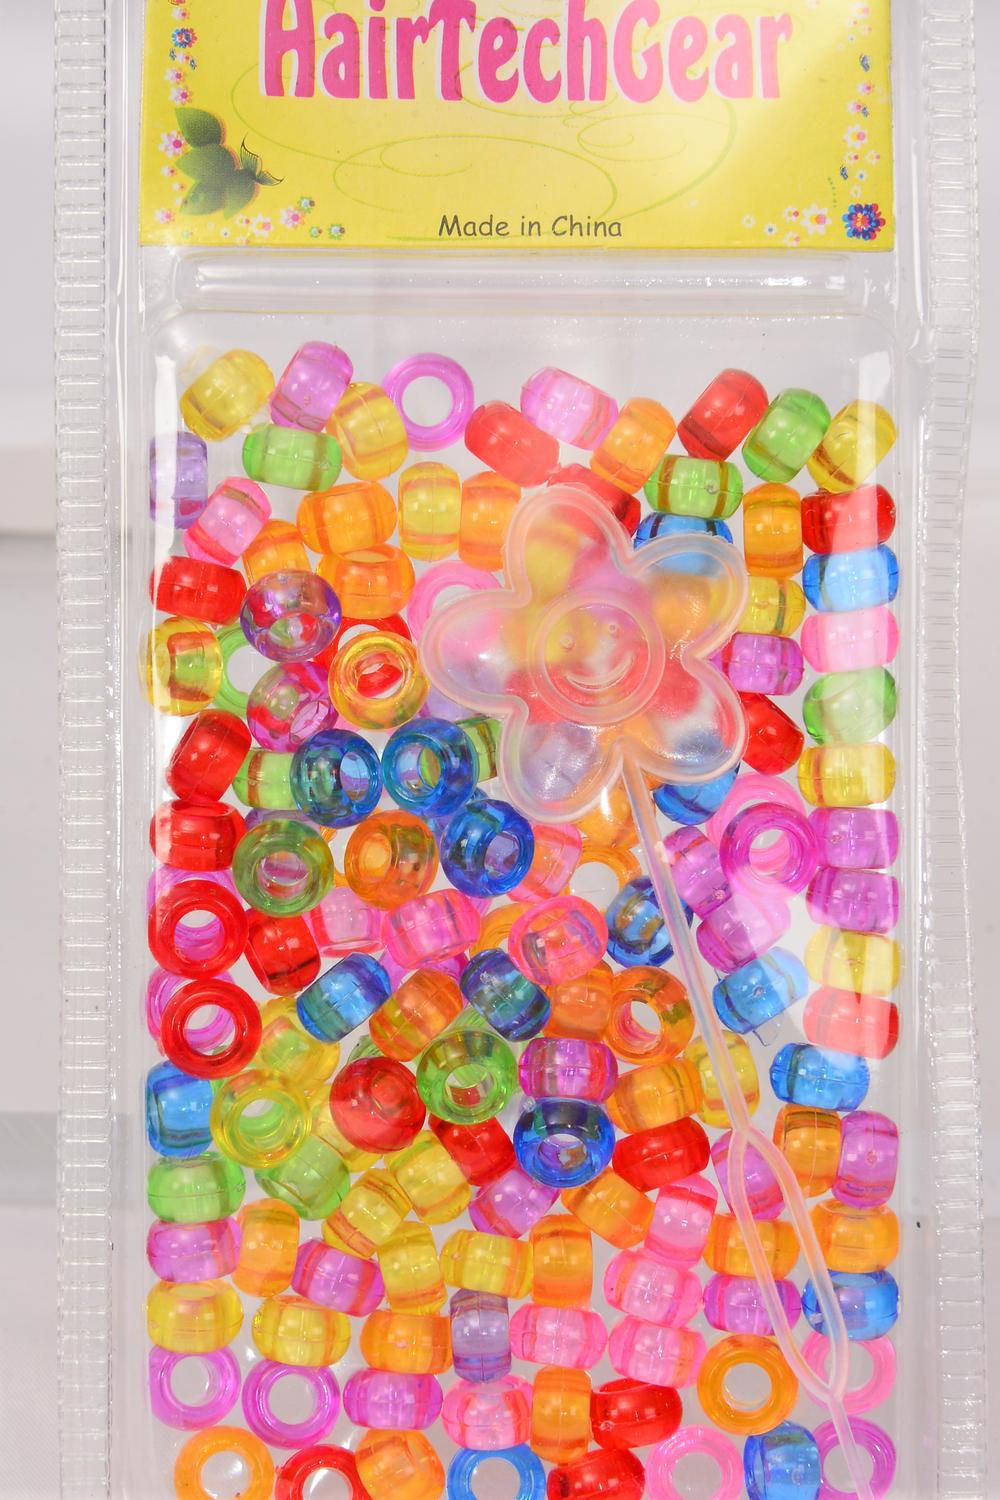 Hair Beads Acrylic Round/DZ Choose Colors,Each Card have UPC Code,12 Card= Dozen